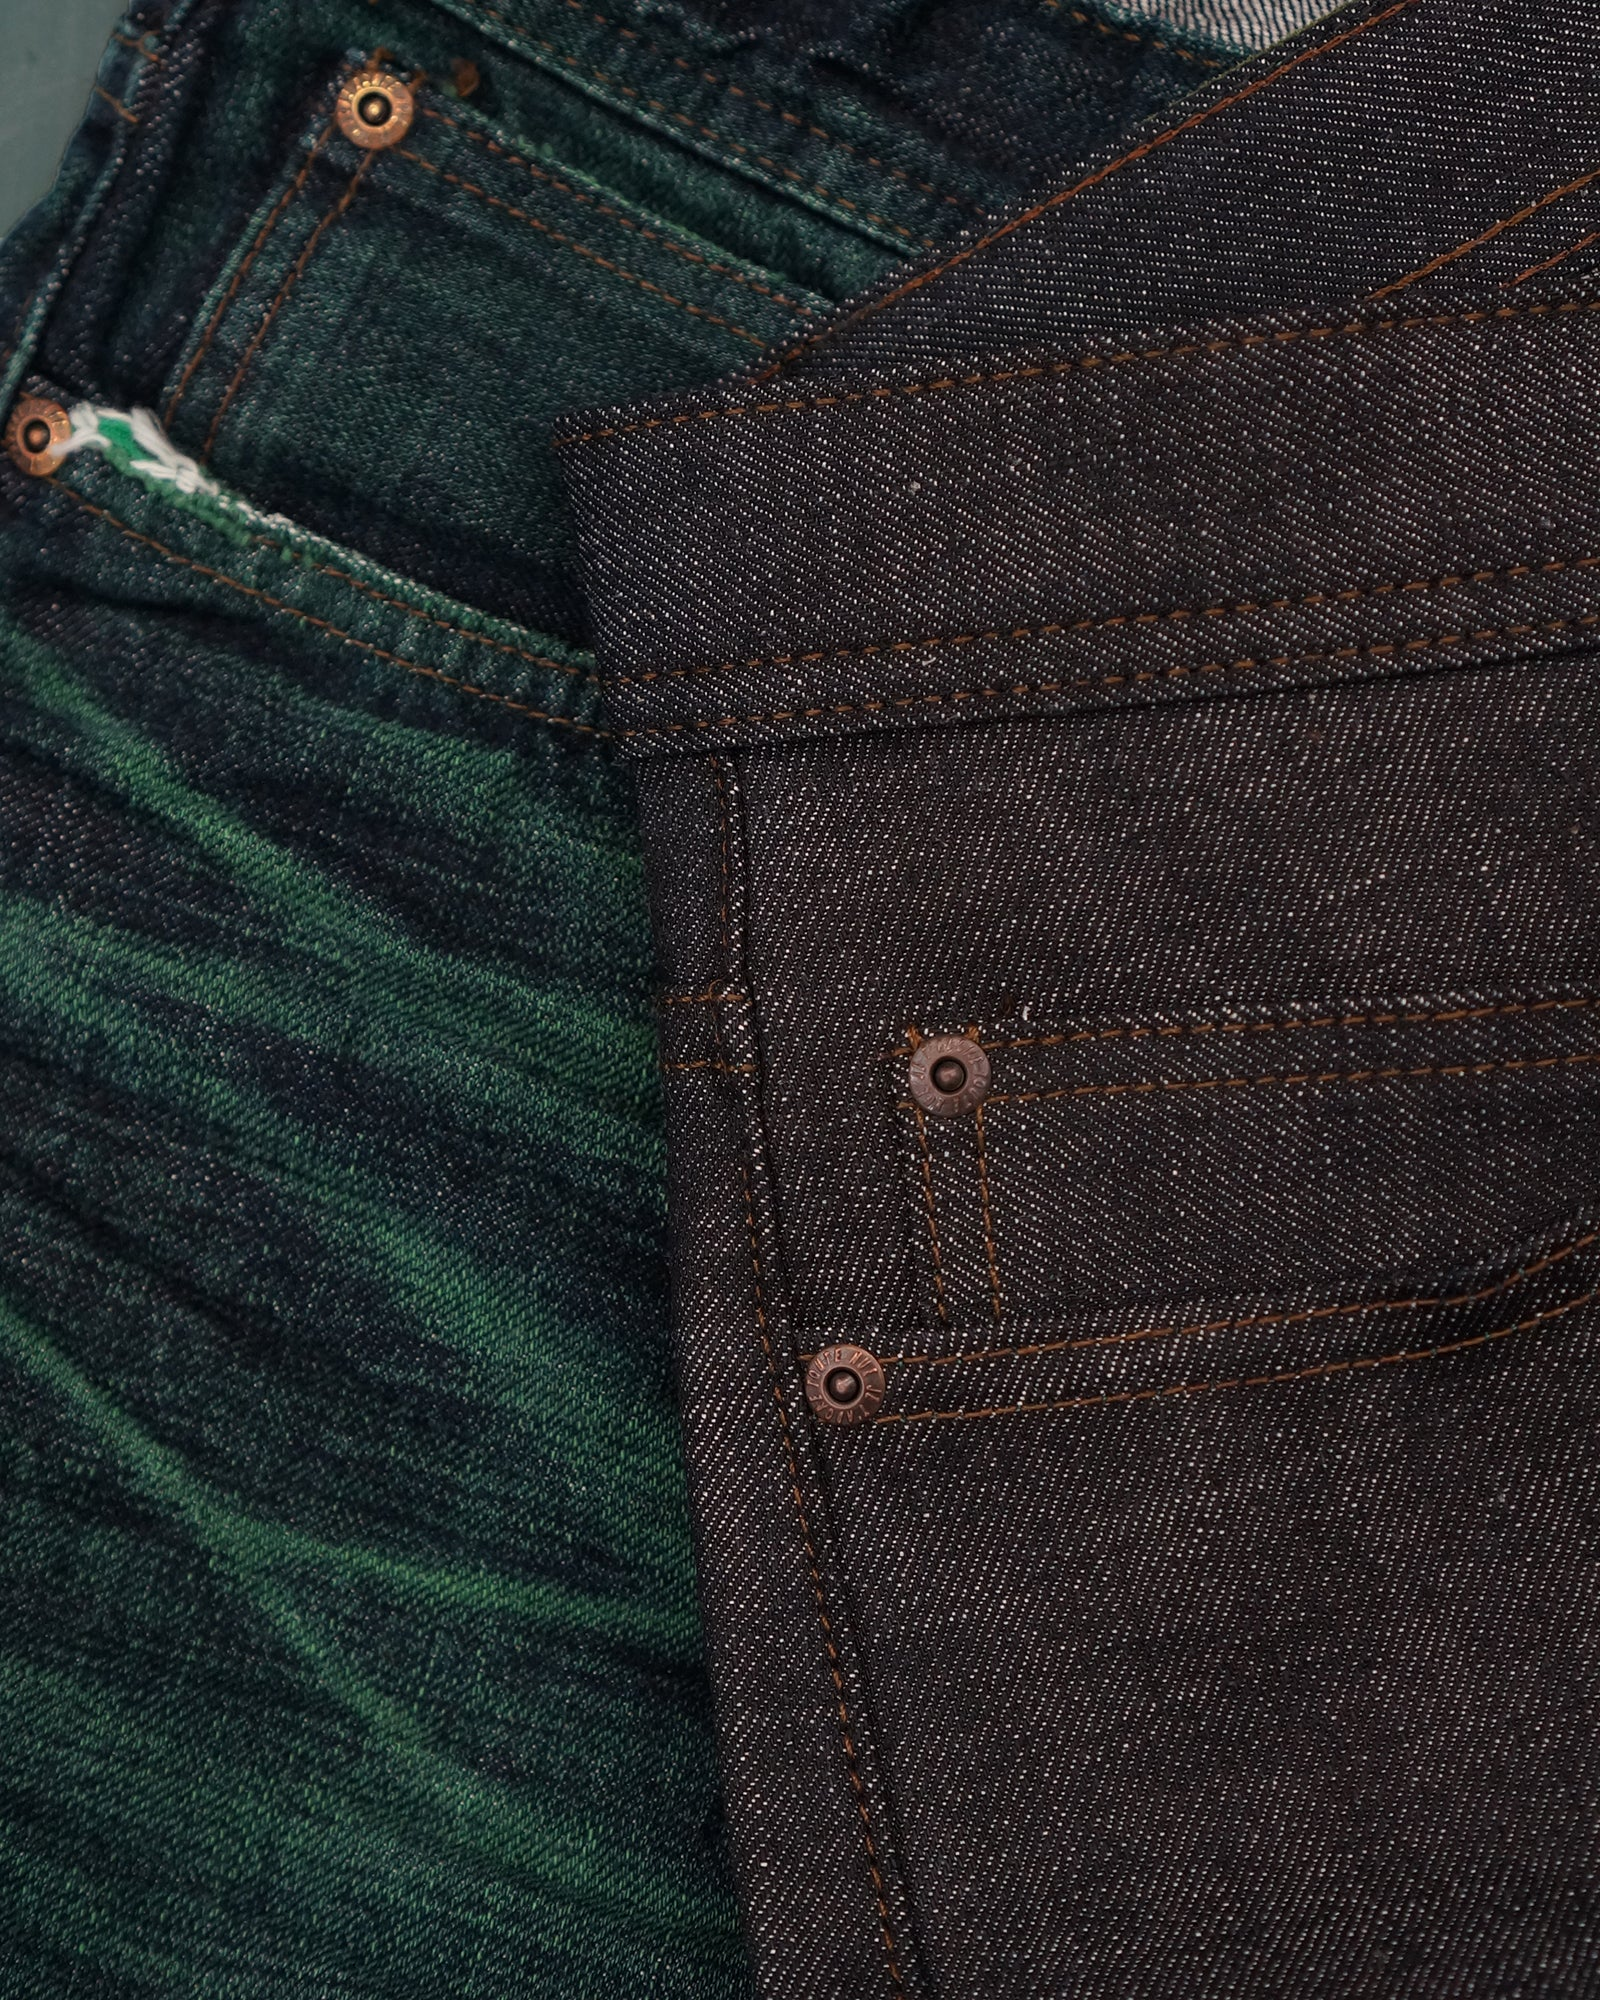 Faded Green Core Selvedge by Naked & Famous Denim